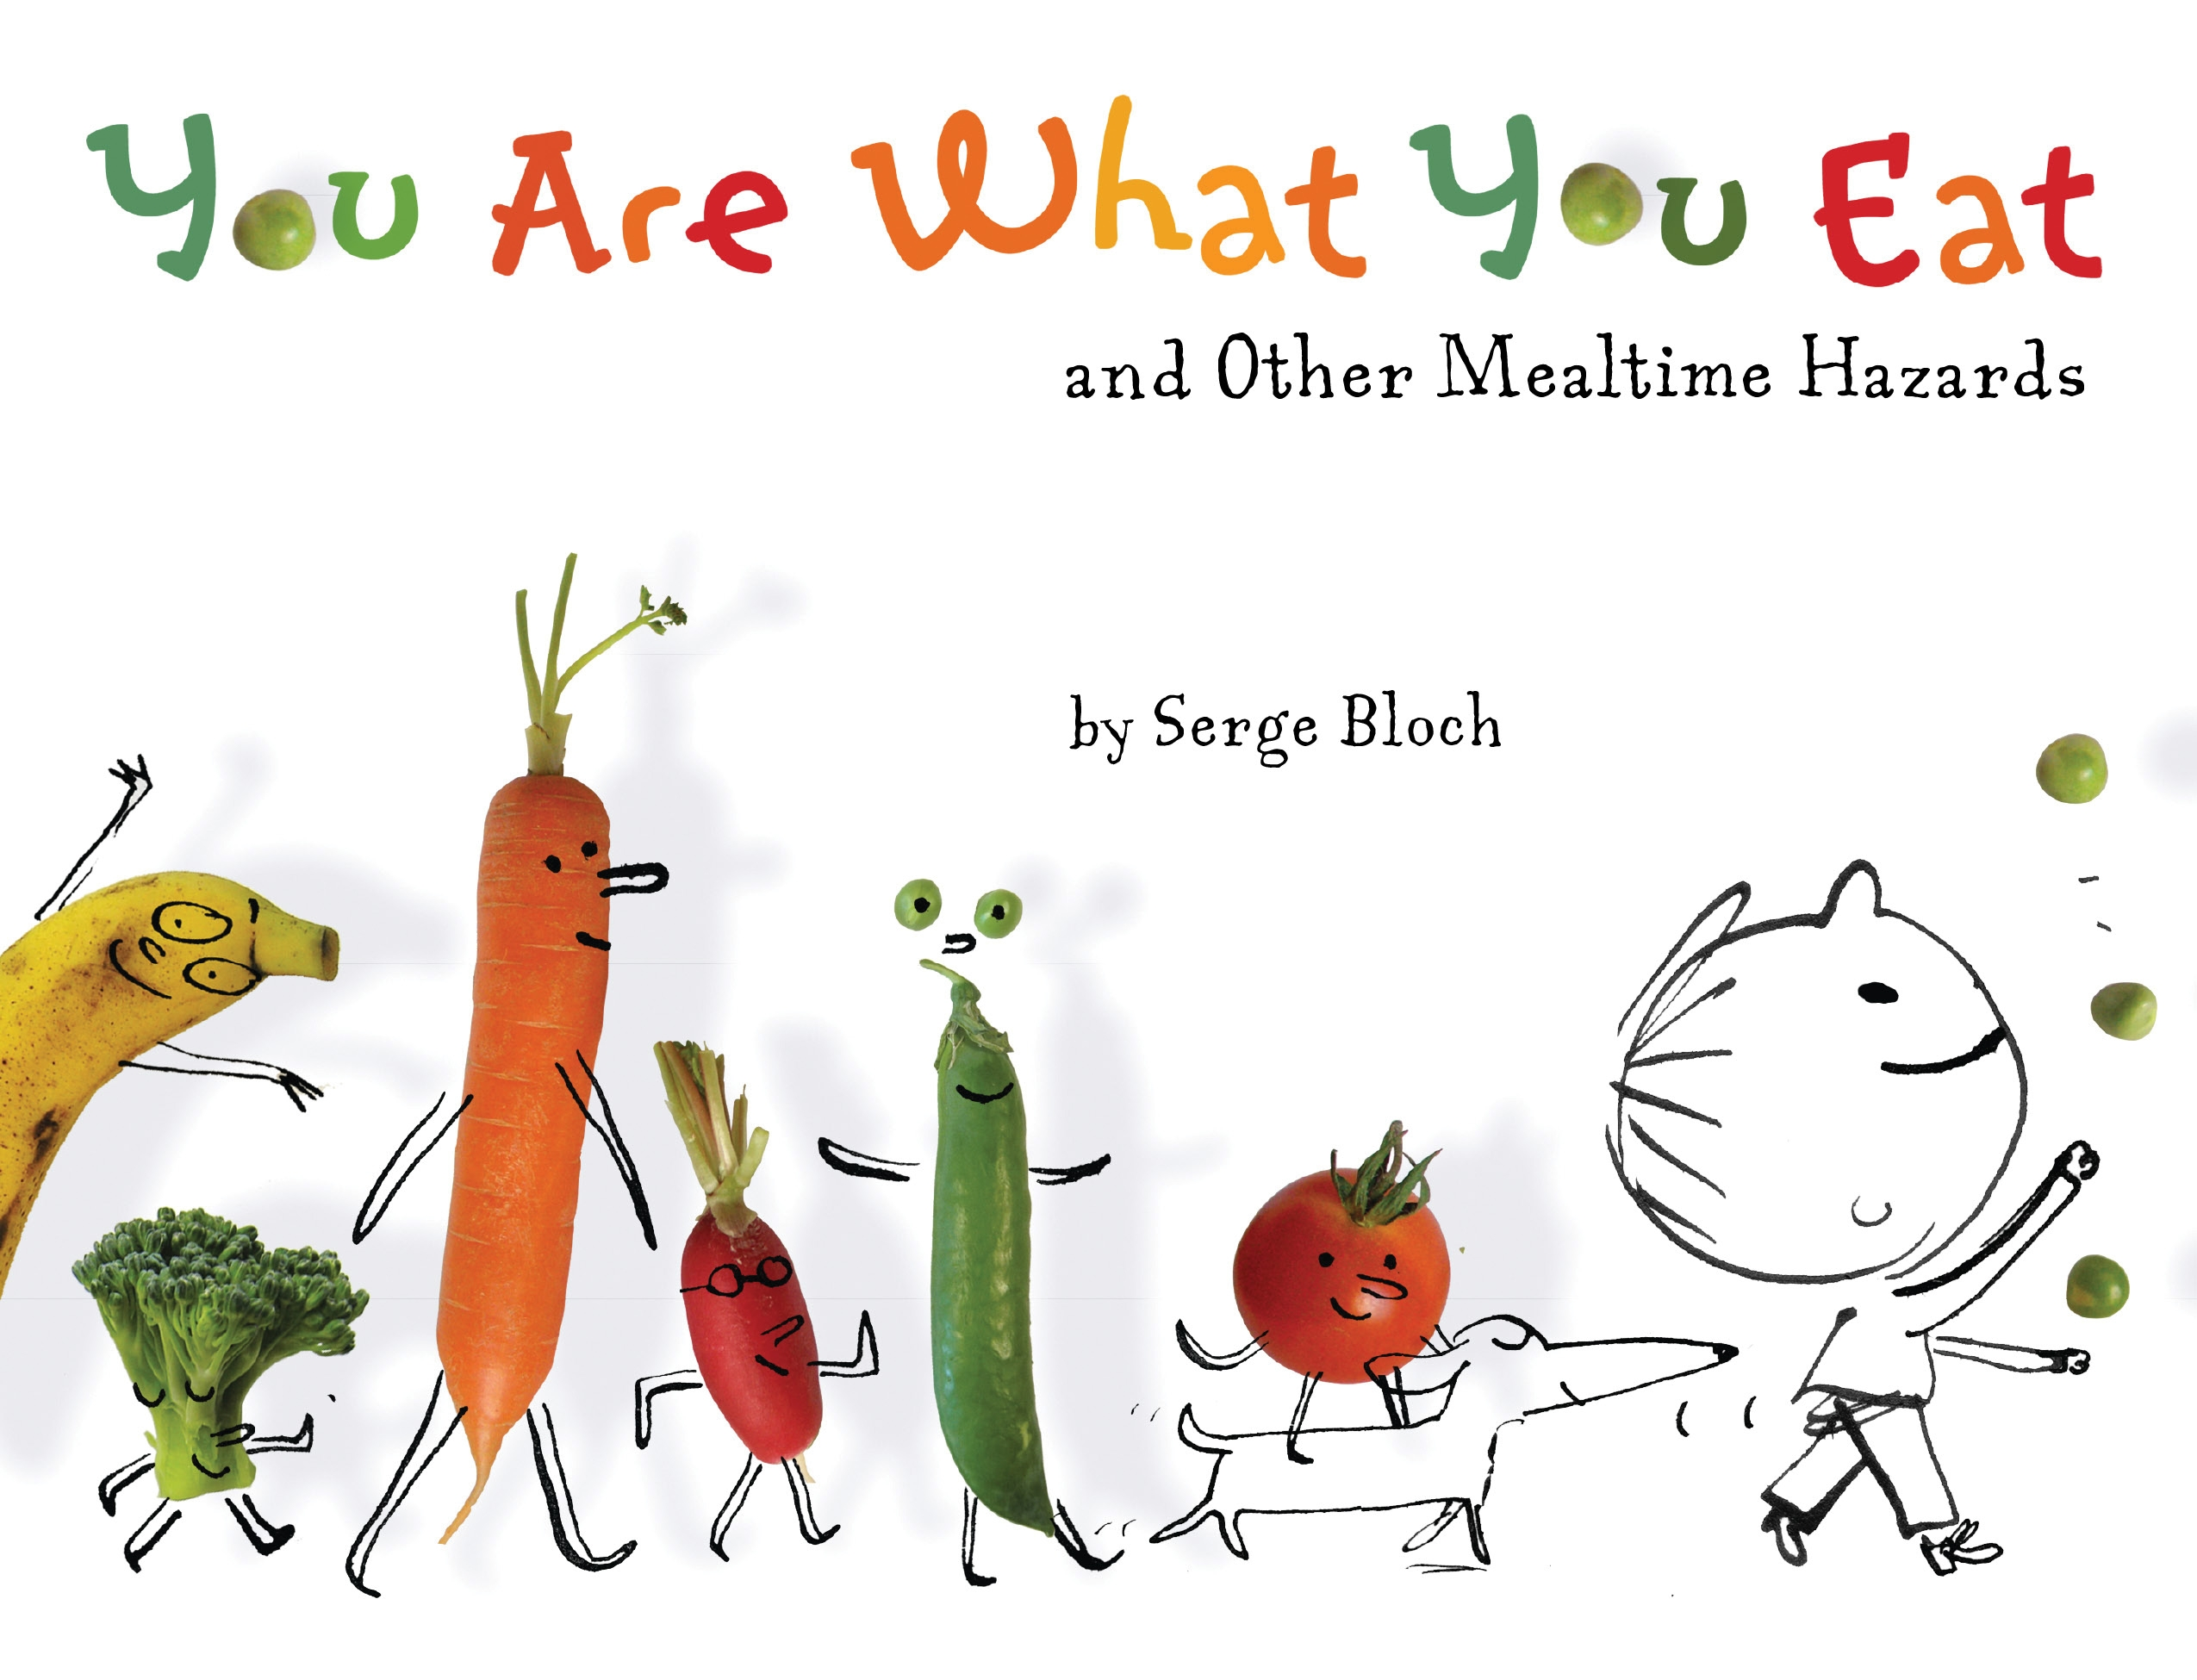 essay about you are what you eat Free essay: when was the last time you walked into mcdonald's and chose to order a garden salad instead of a big mac if it has been a long time, do not.